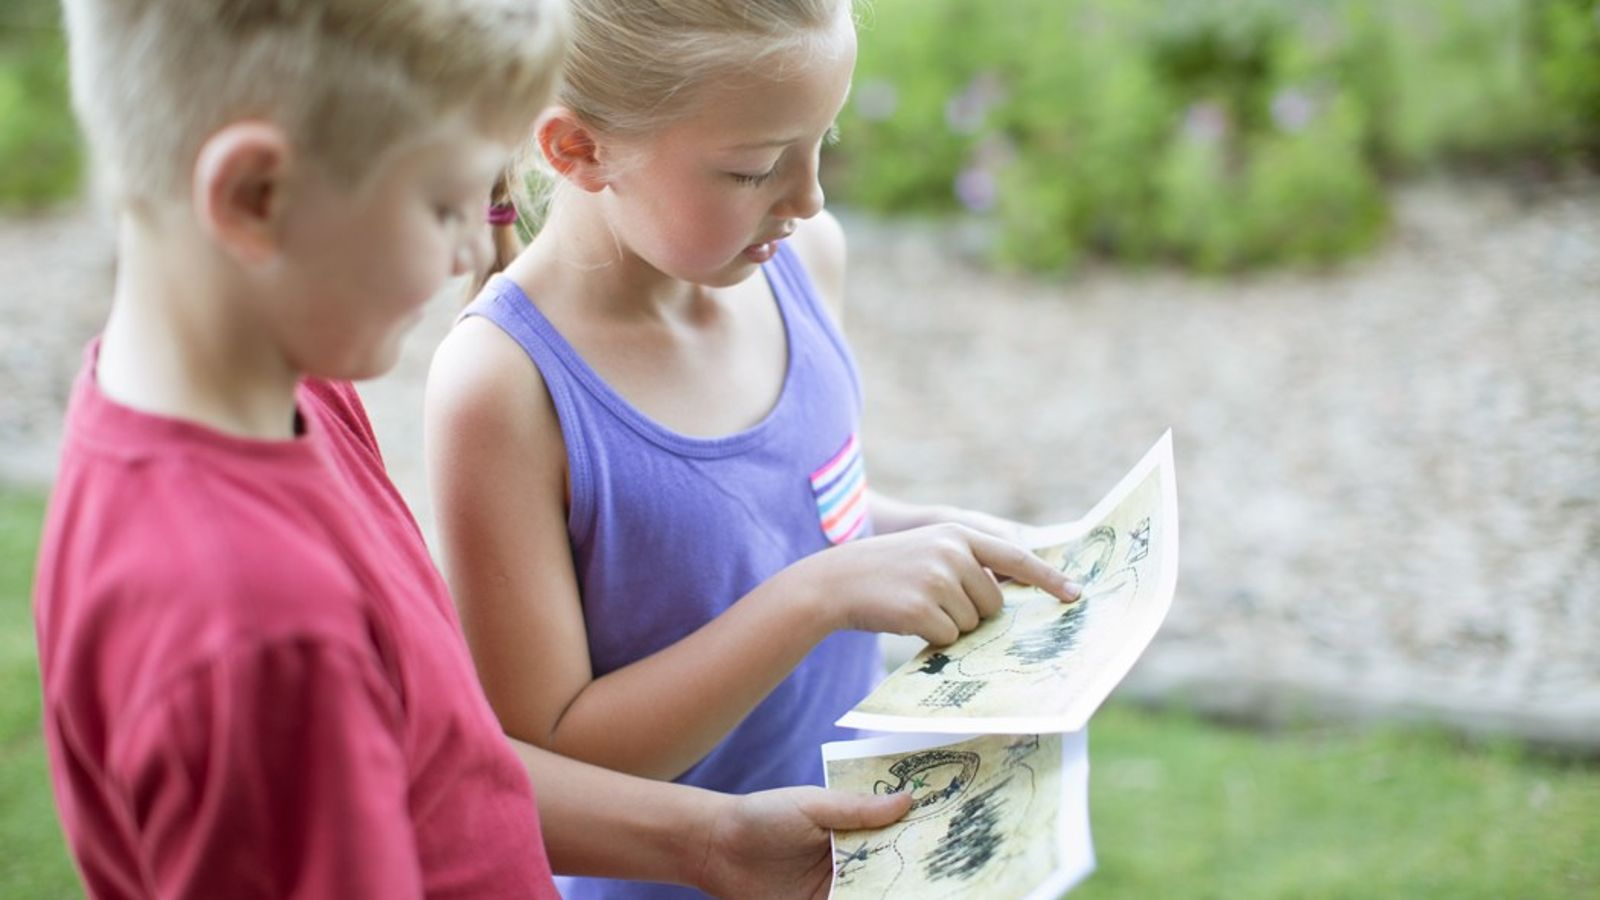 Maps offer a unique and insightful view of anyone's surroundings – and help kids learn more ...